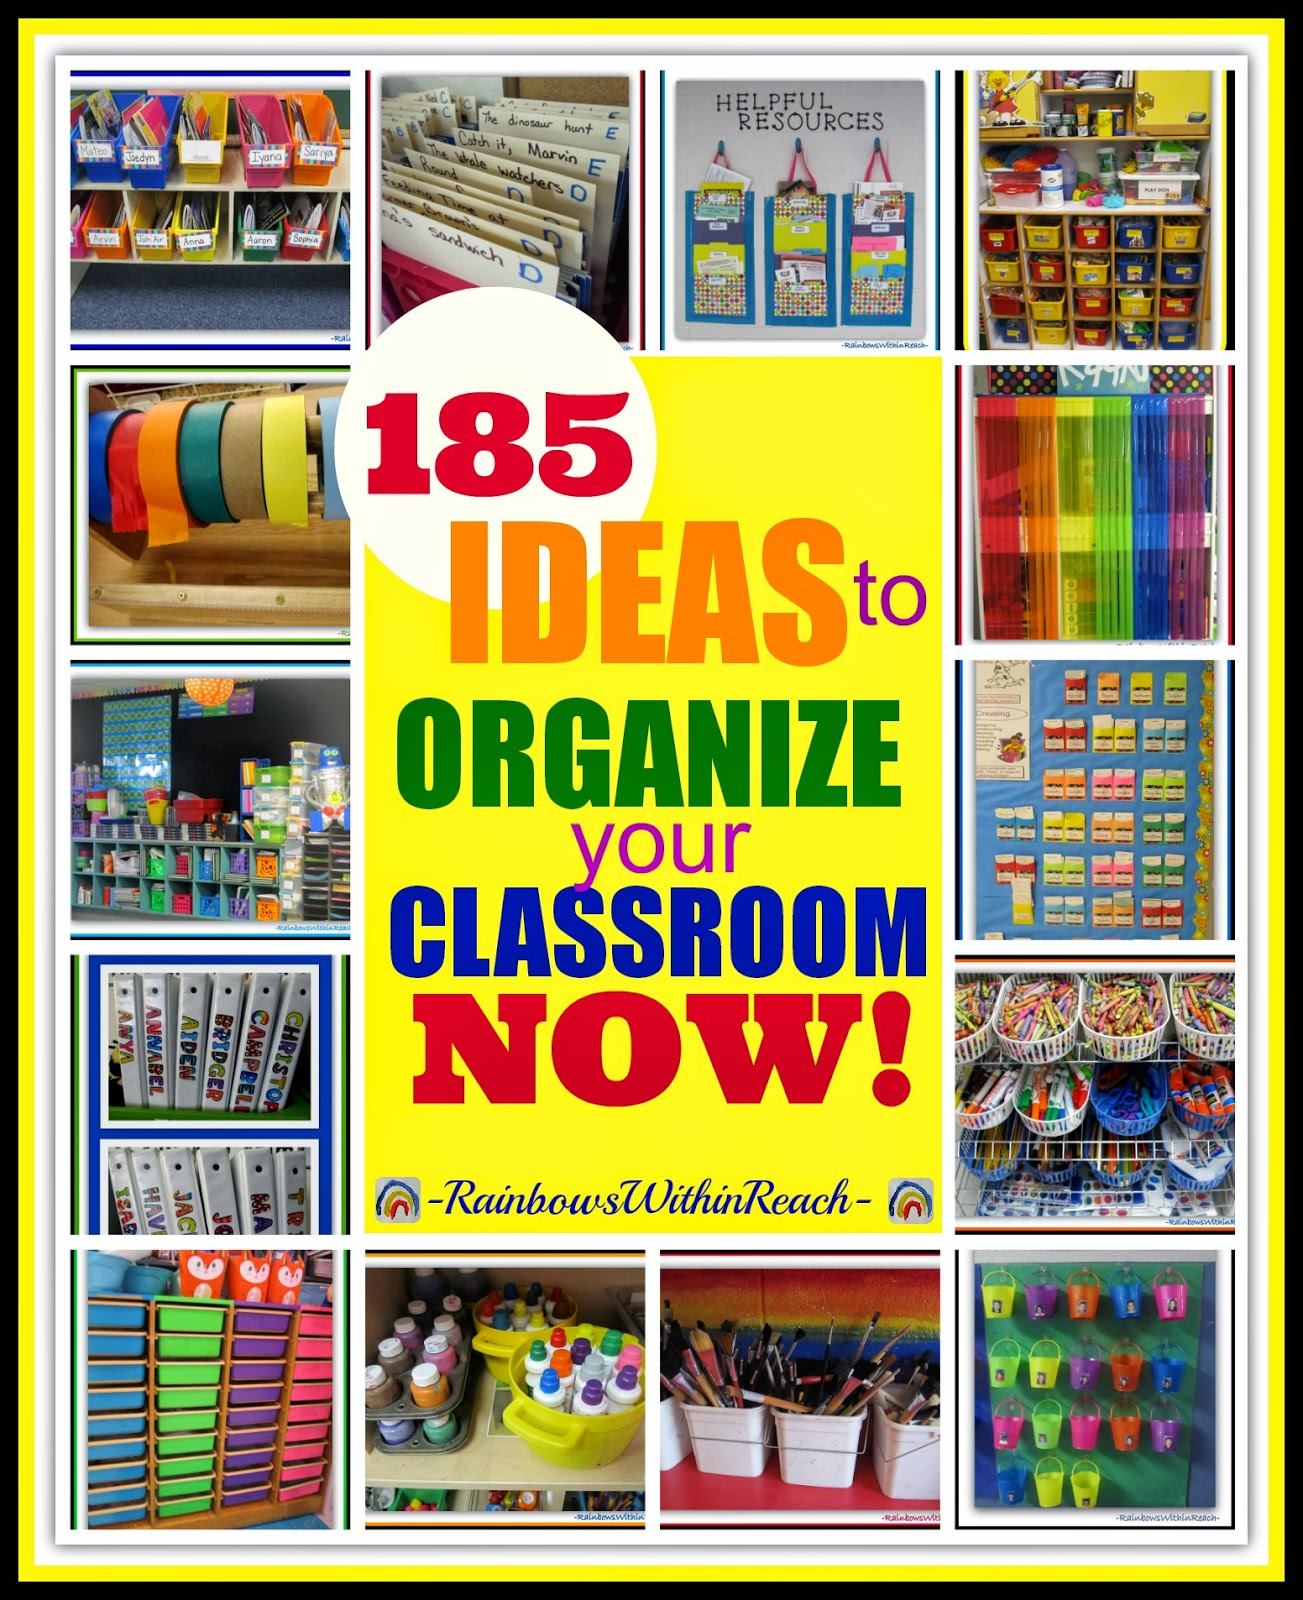 Classroom Design And Organization Ideas ~ Rainbowswithinreach ideas for classroom organization